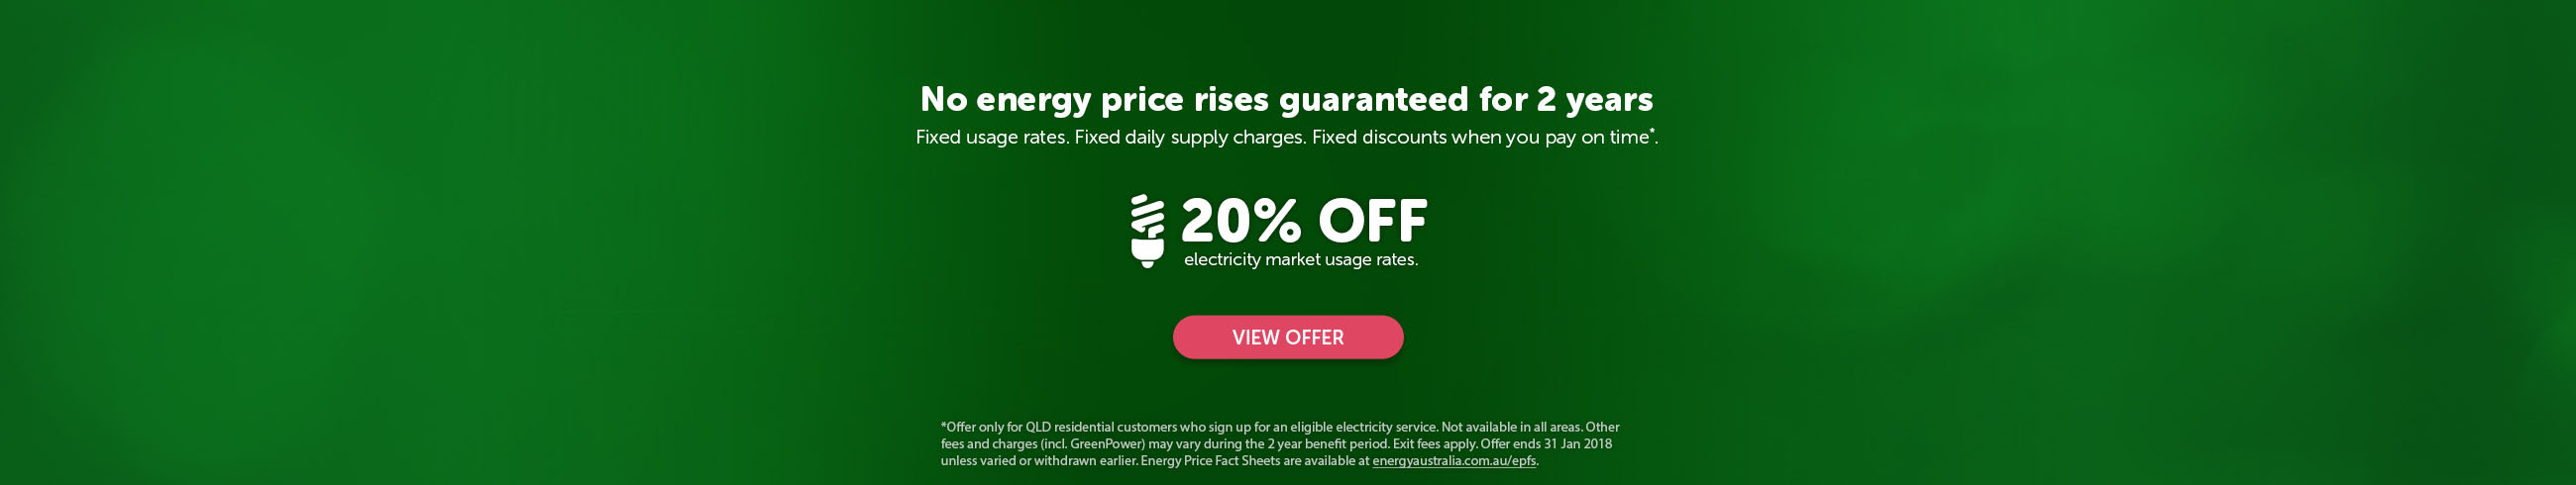 No energy price rises guaranteed for 2 years. Fixed usage rates. Fixed daily supply charges. Fixed discounts when you pay on time*. 20% off electricity market usage rates.